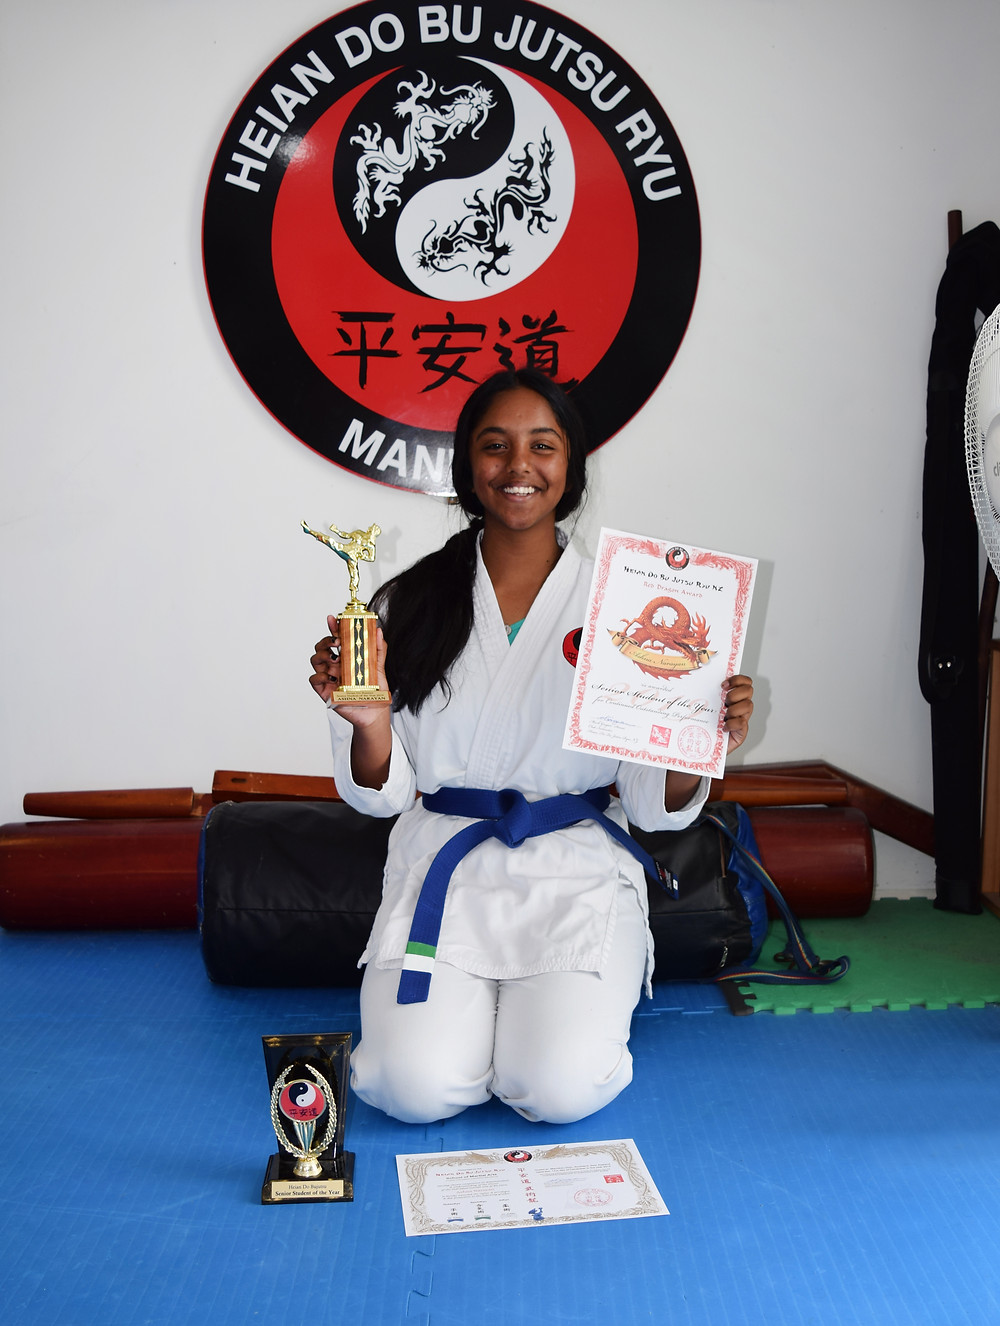 Ashna earns Senior Student of the Year 2019 and also grades Blue belt in Te Jutsu, Green belt in Aiki Jutsu and White in Ju Jutsu